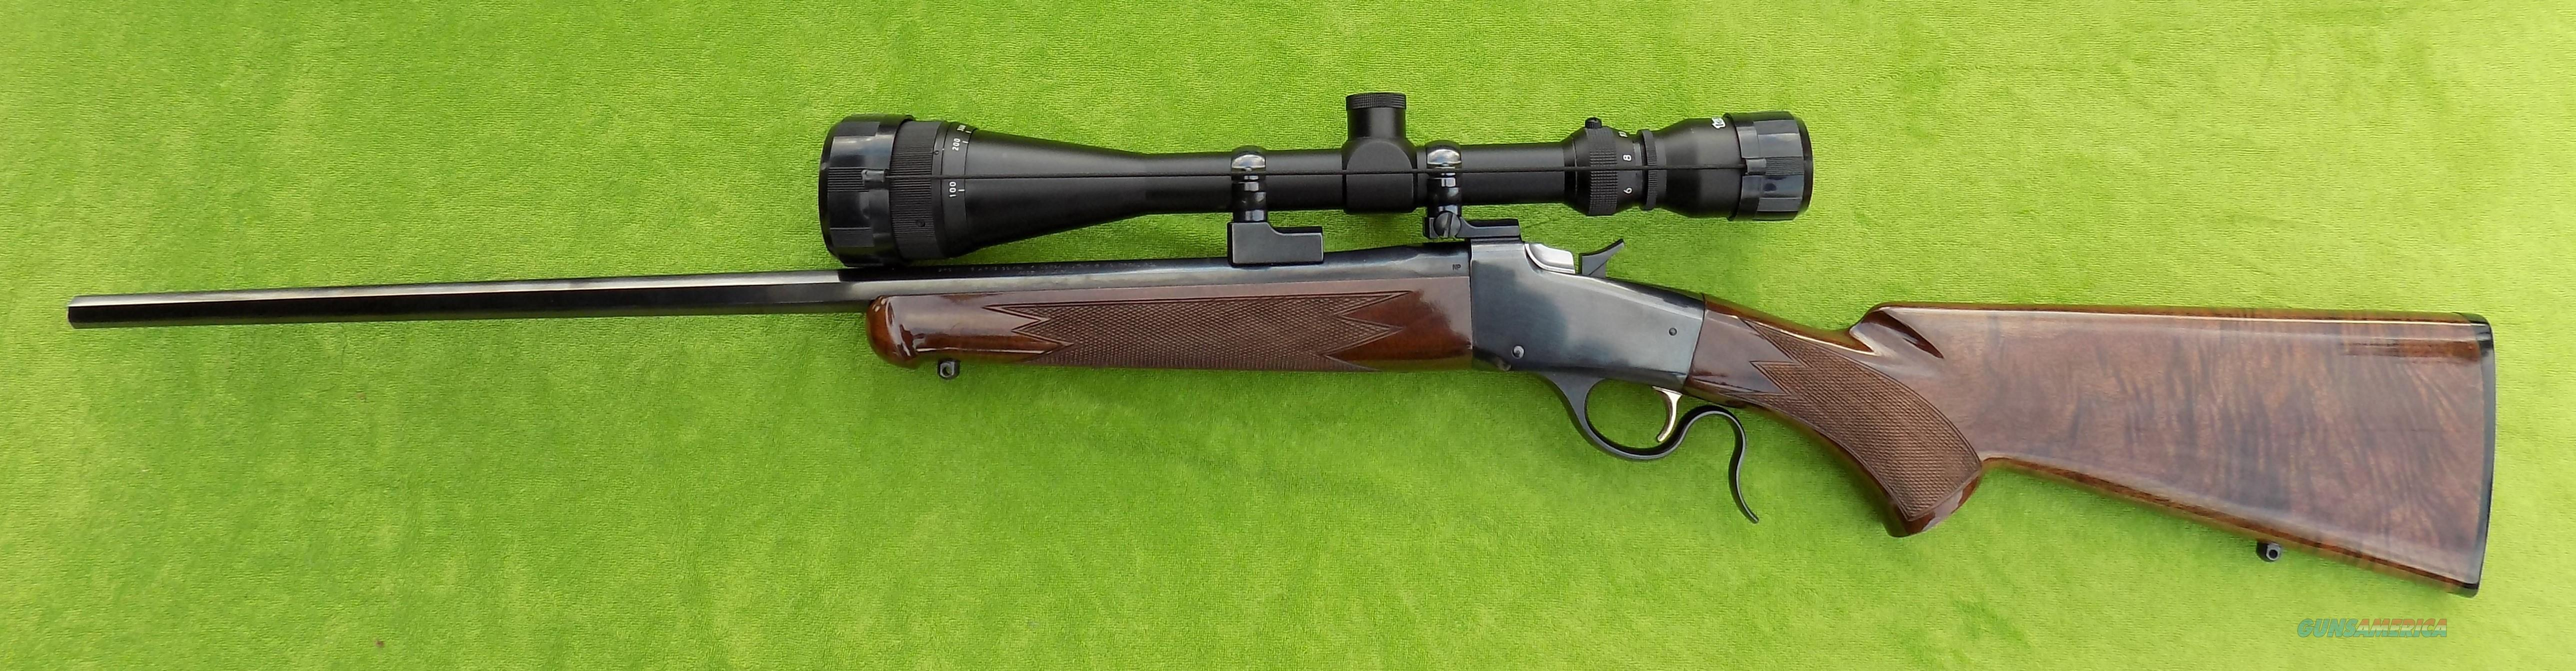 Browning 1885 .243  Guns > Rifles > Browning Rifles > Singe Shot